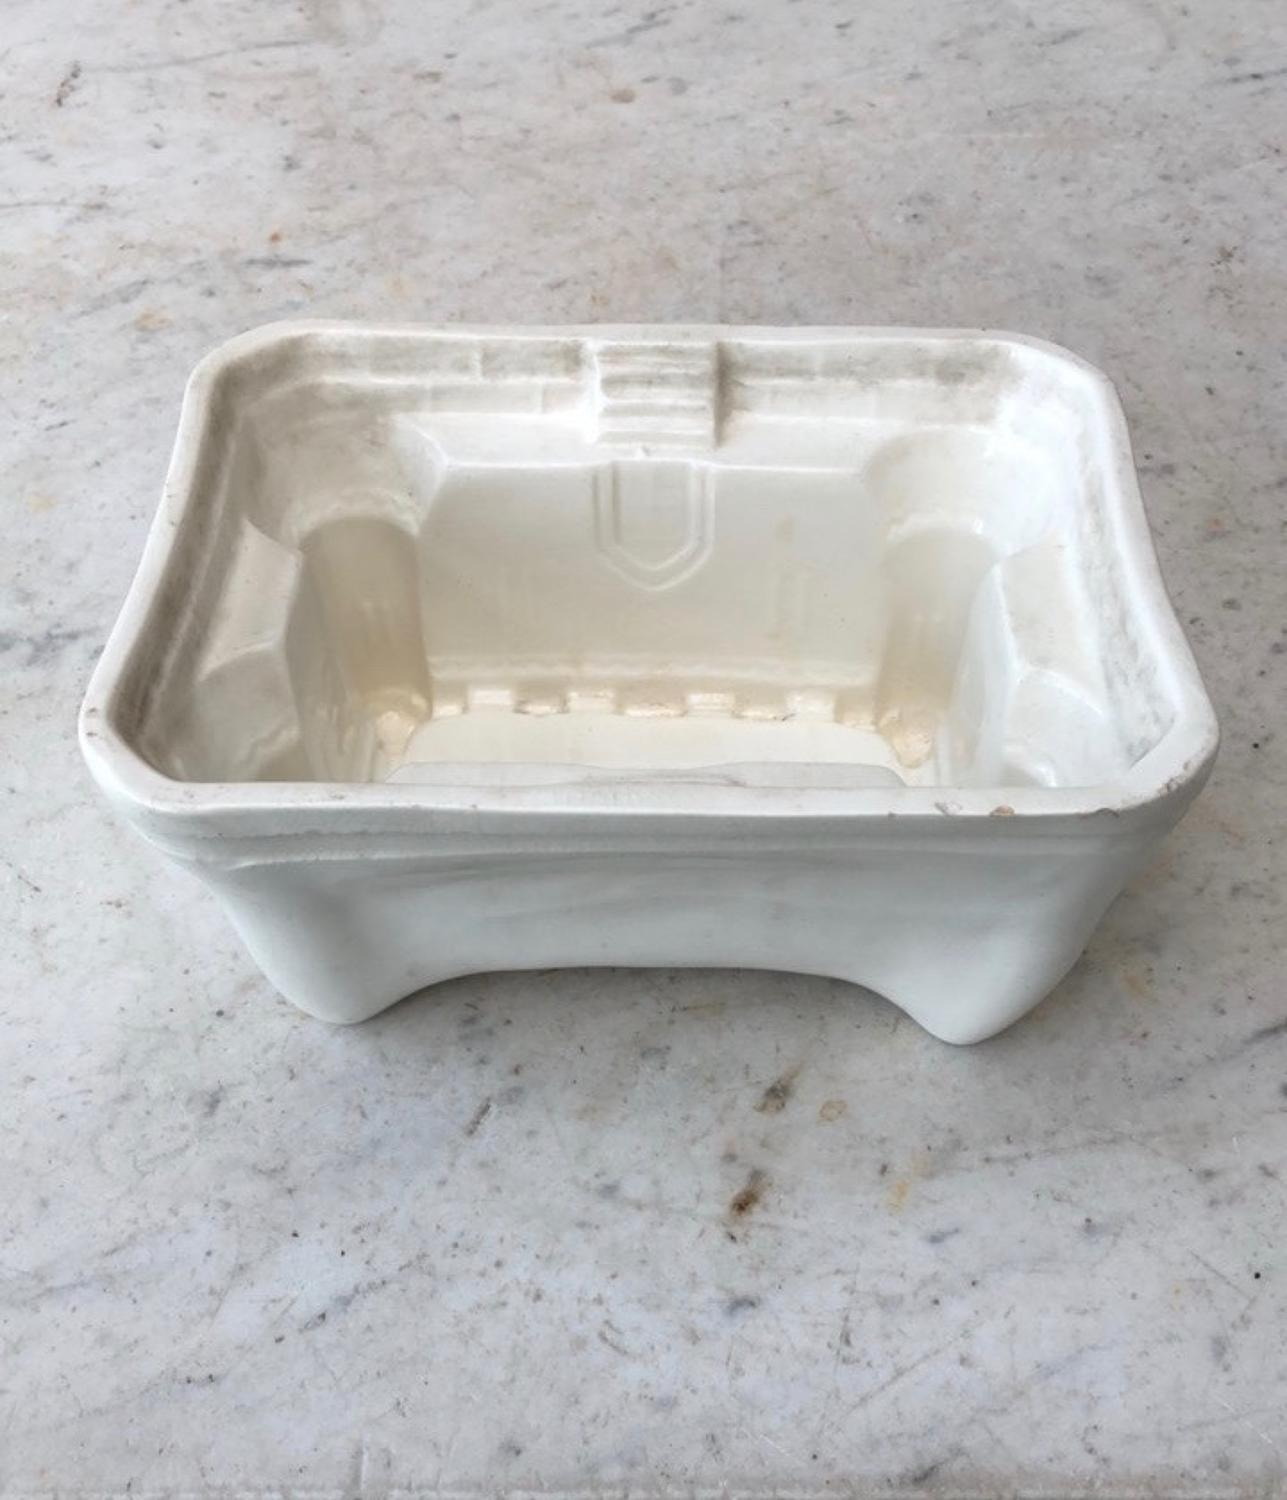 Rare Victorian White Ironstone Jelly or Blancmange Mould - Castle